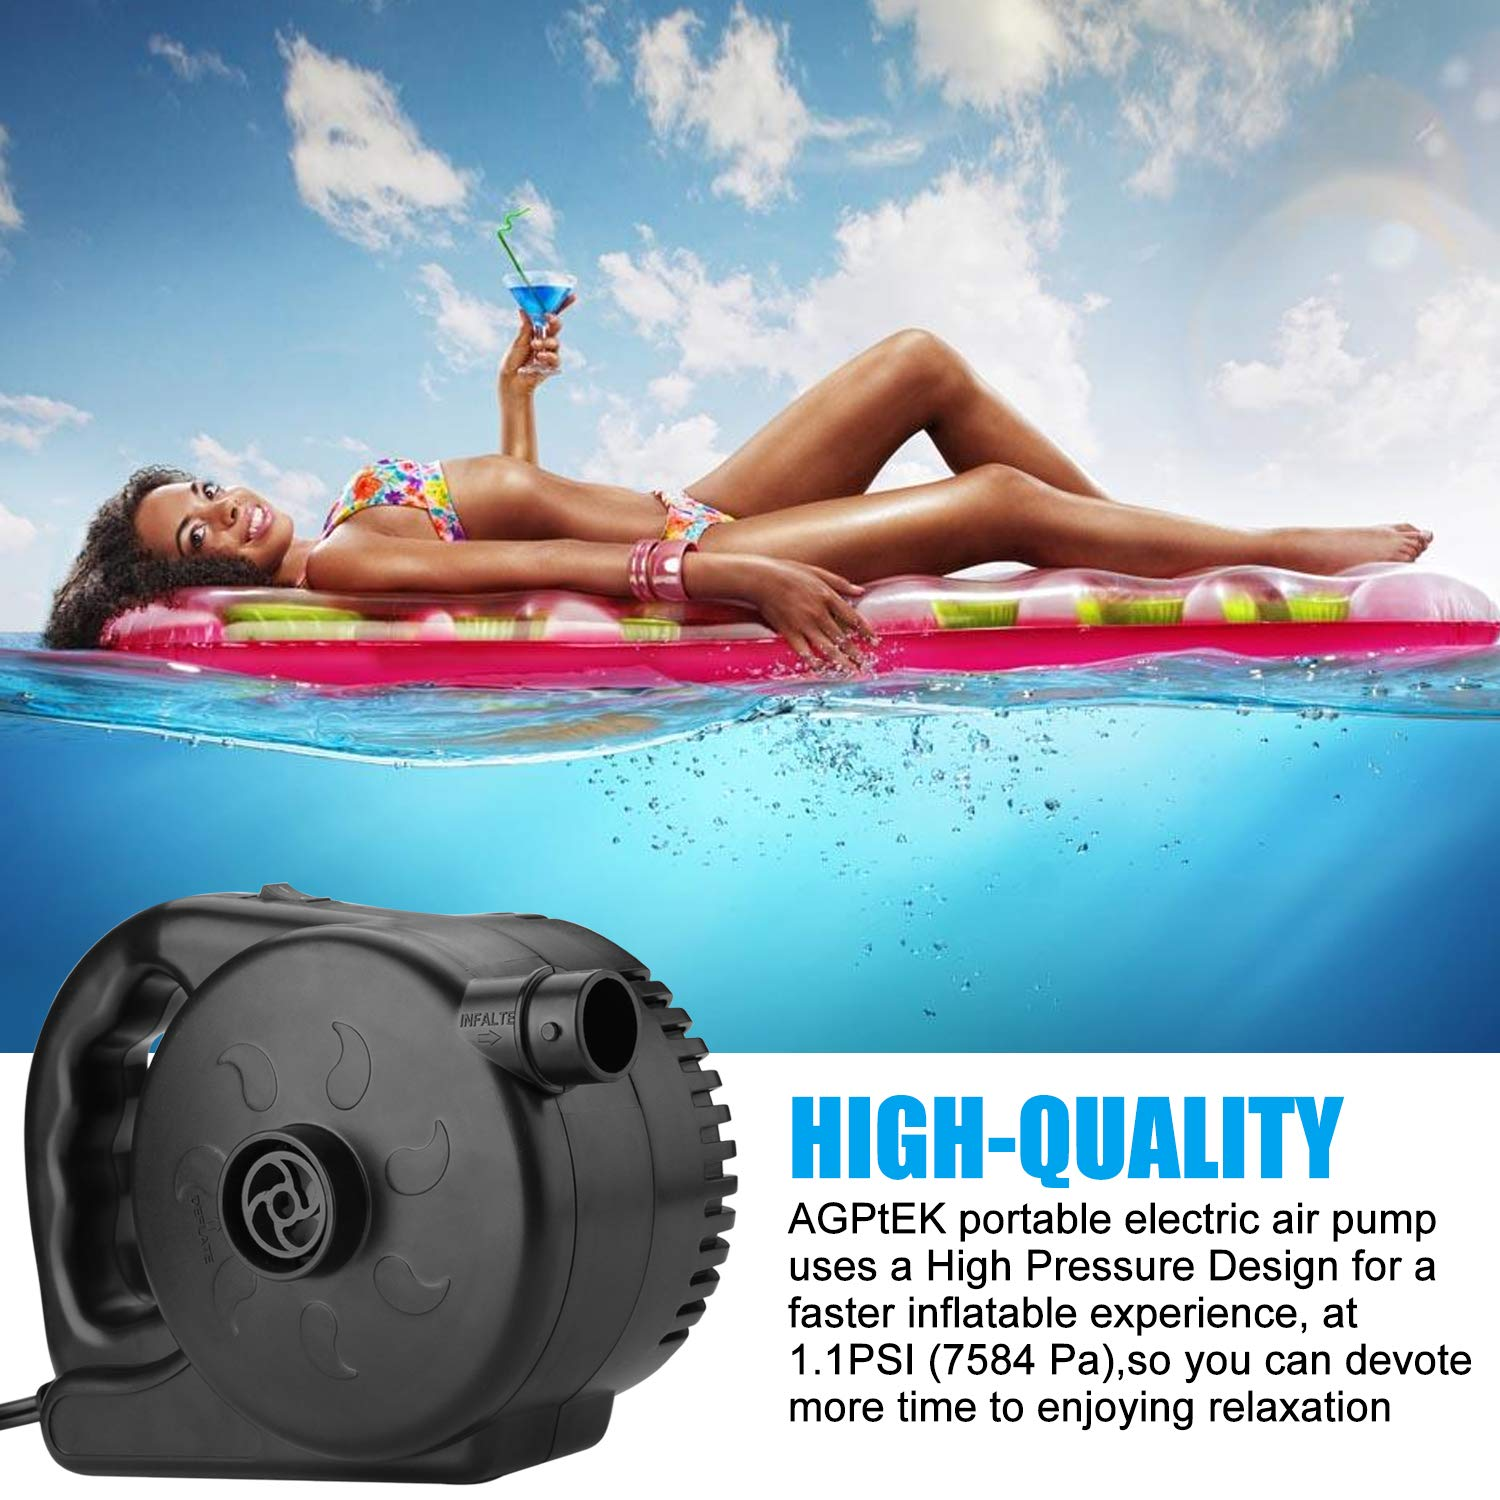 Inflatable Sofas /&Inflatable Pools etc Black Rafts High Power Air Pump Inflator /&Deflator Valve with 2 Nozzles 110 V AGPTEK Electric Air Pump Airbeds Fast Filling Air Pump for Swimming Rings